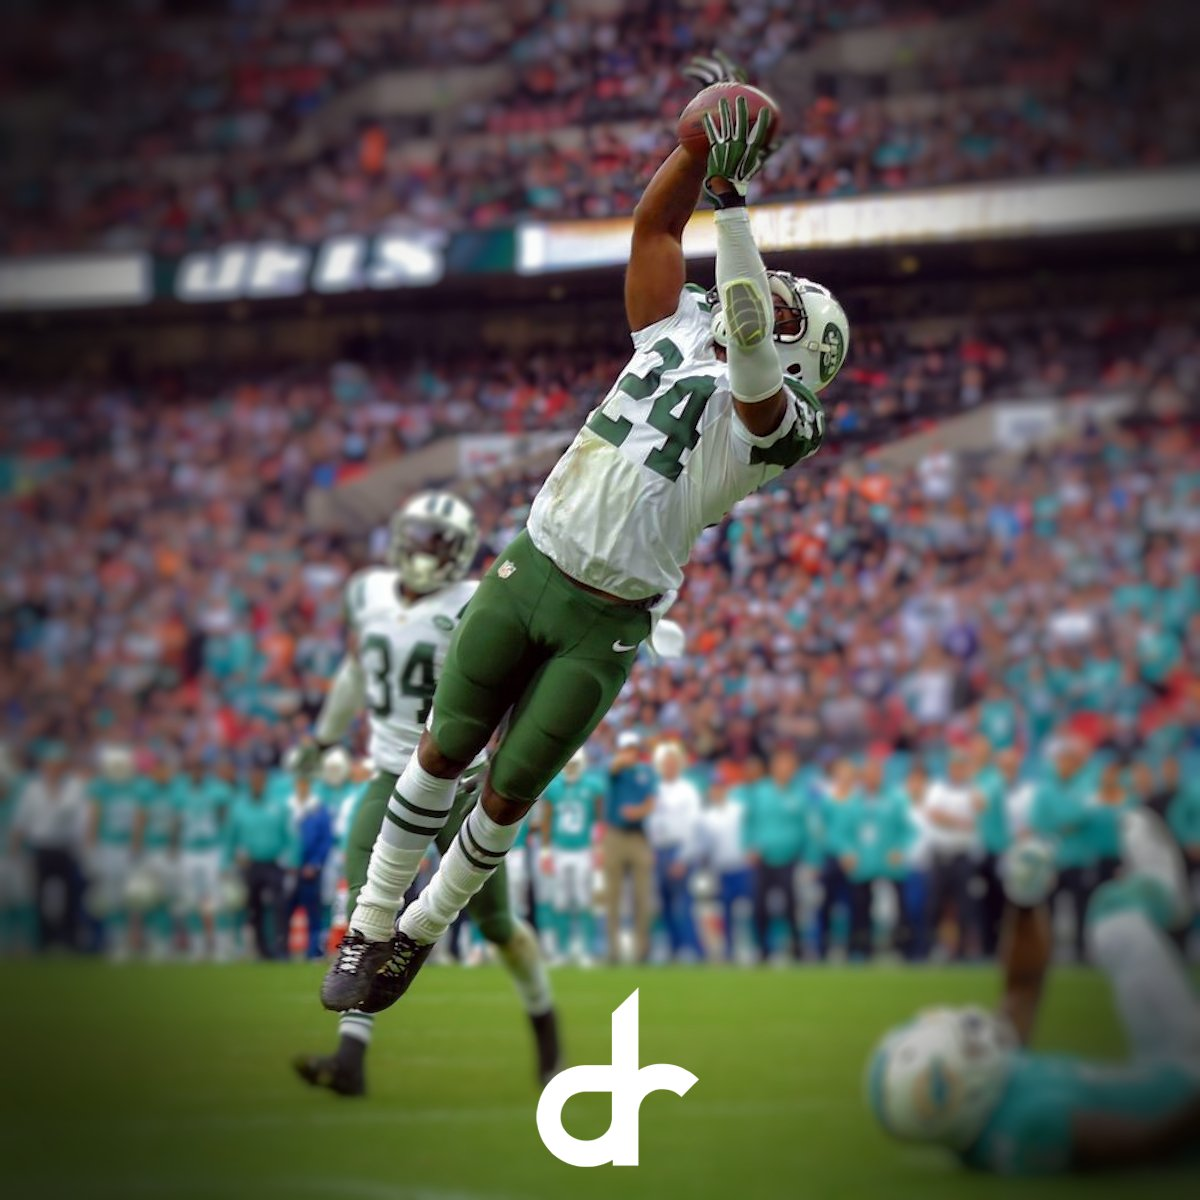 Thursday Throwback... #darrellerevis #revisisland #tbt #followme #jetup